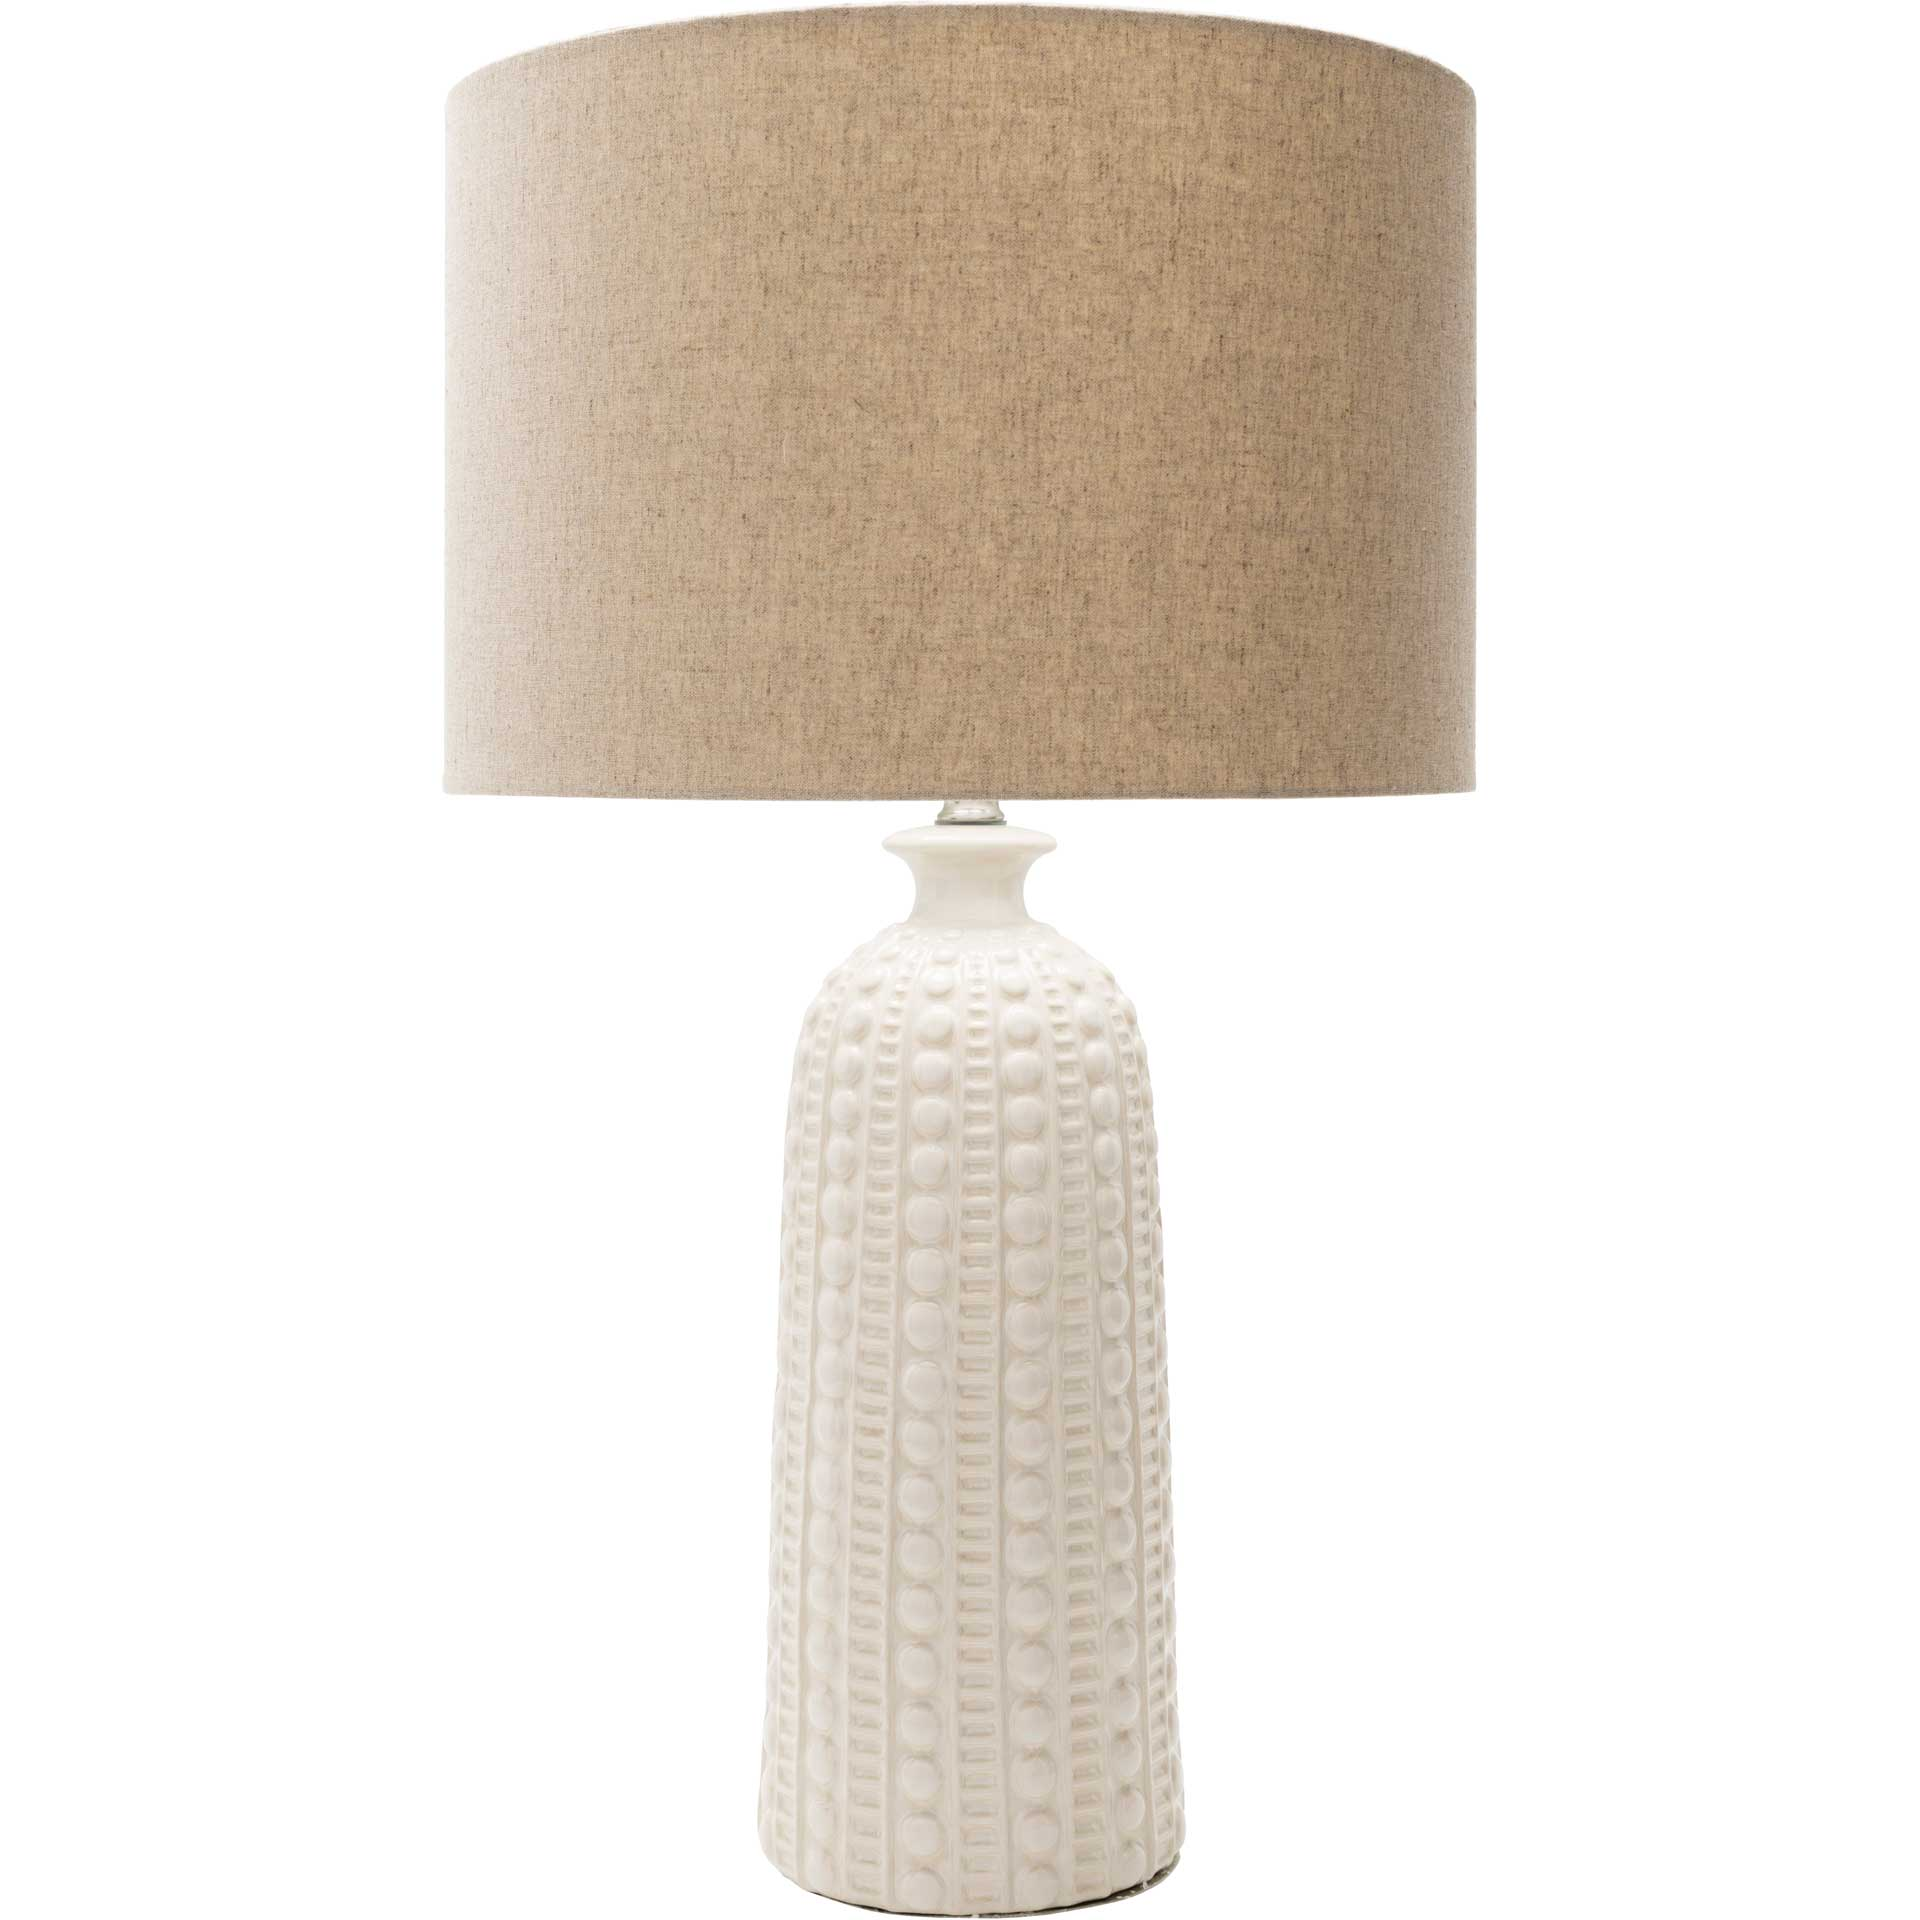 Nelson Table Lamp Camel/White/Ivory